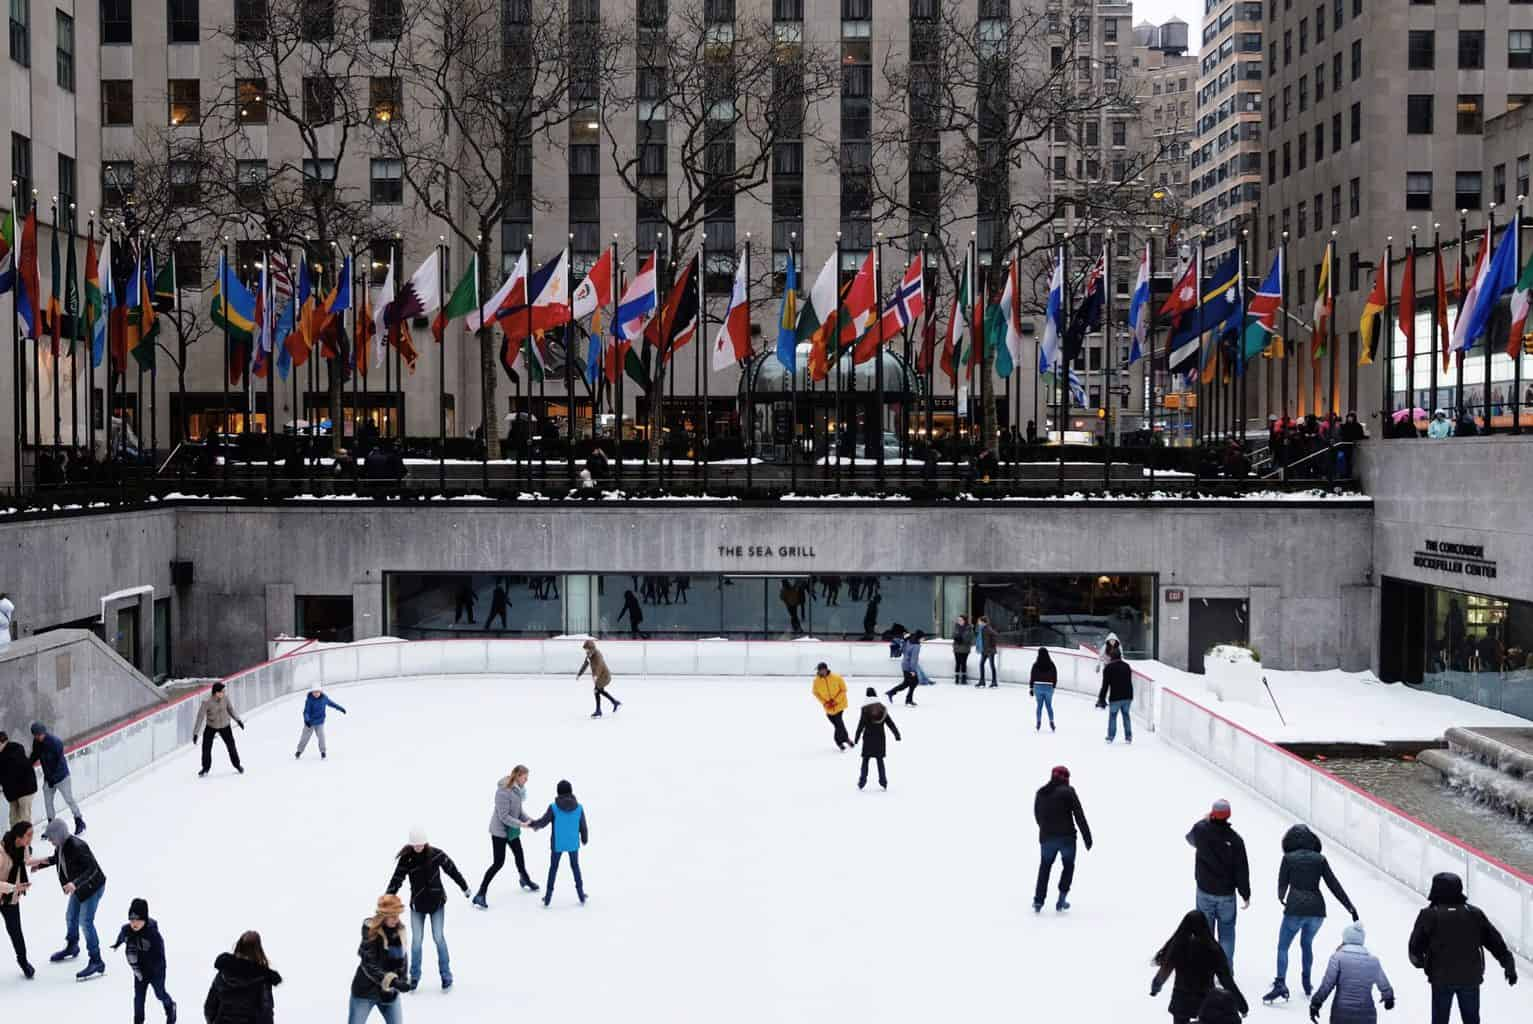 Ice skating at Rockefeller Center in the winter.